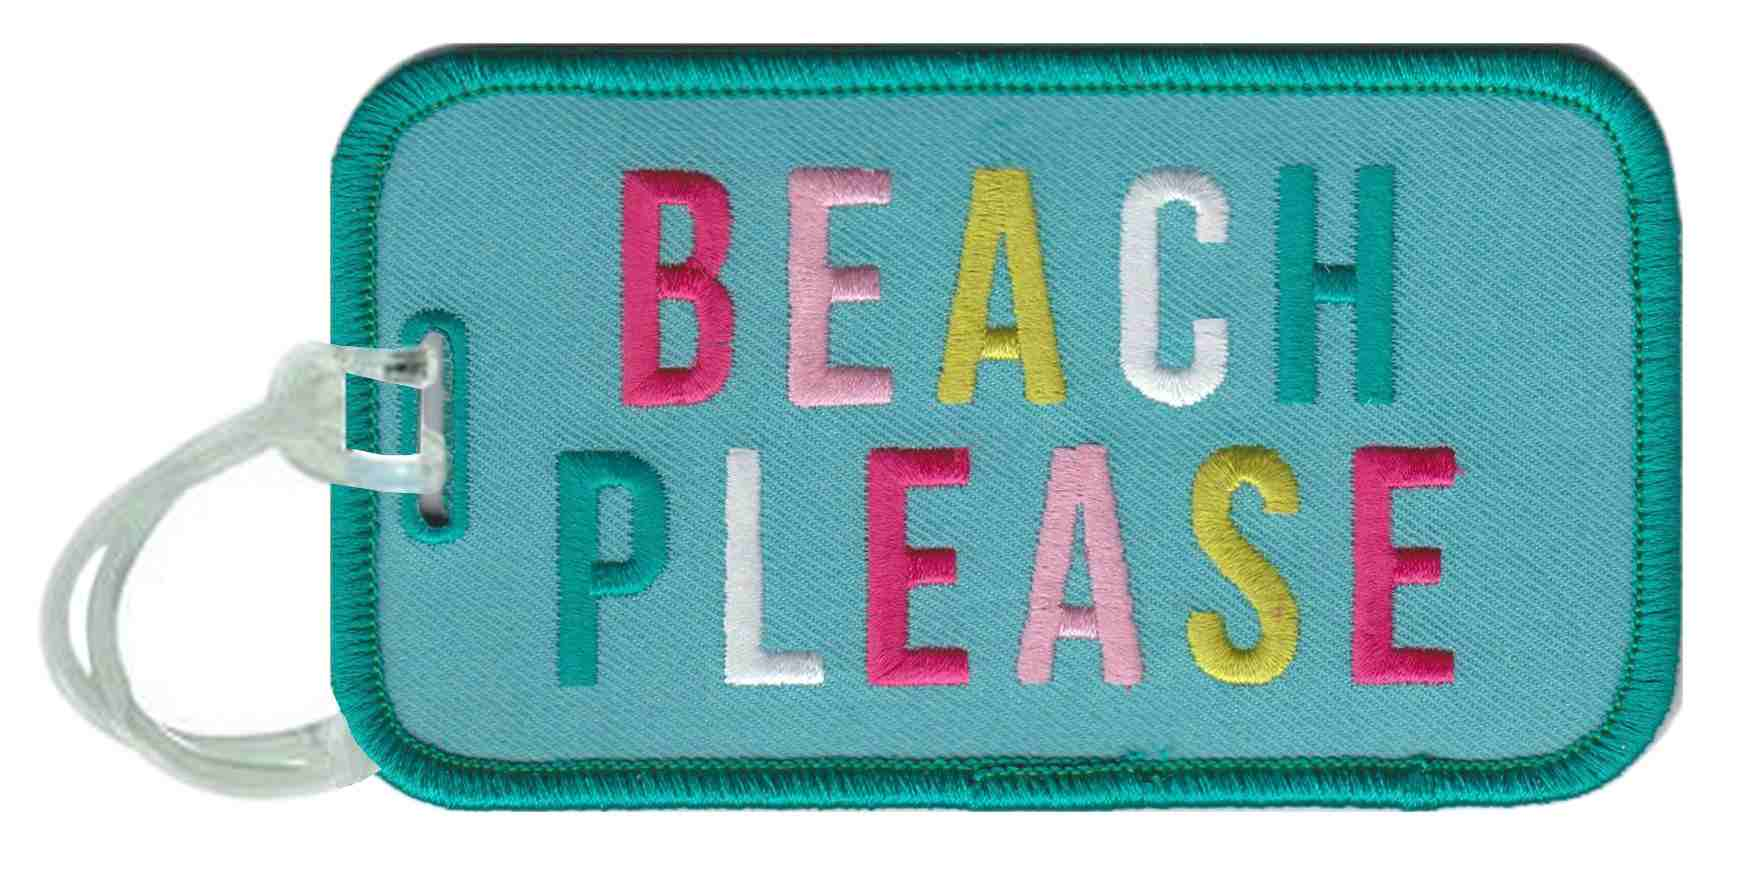 Beach Please Wholesale Luggage Tags